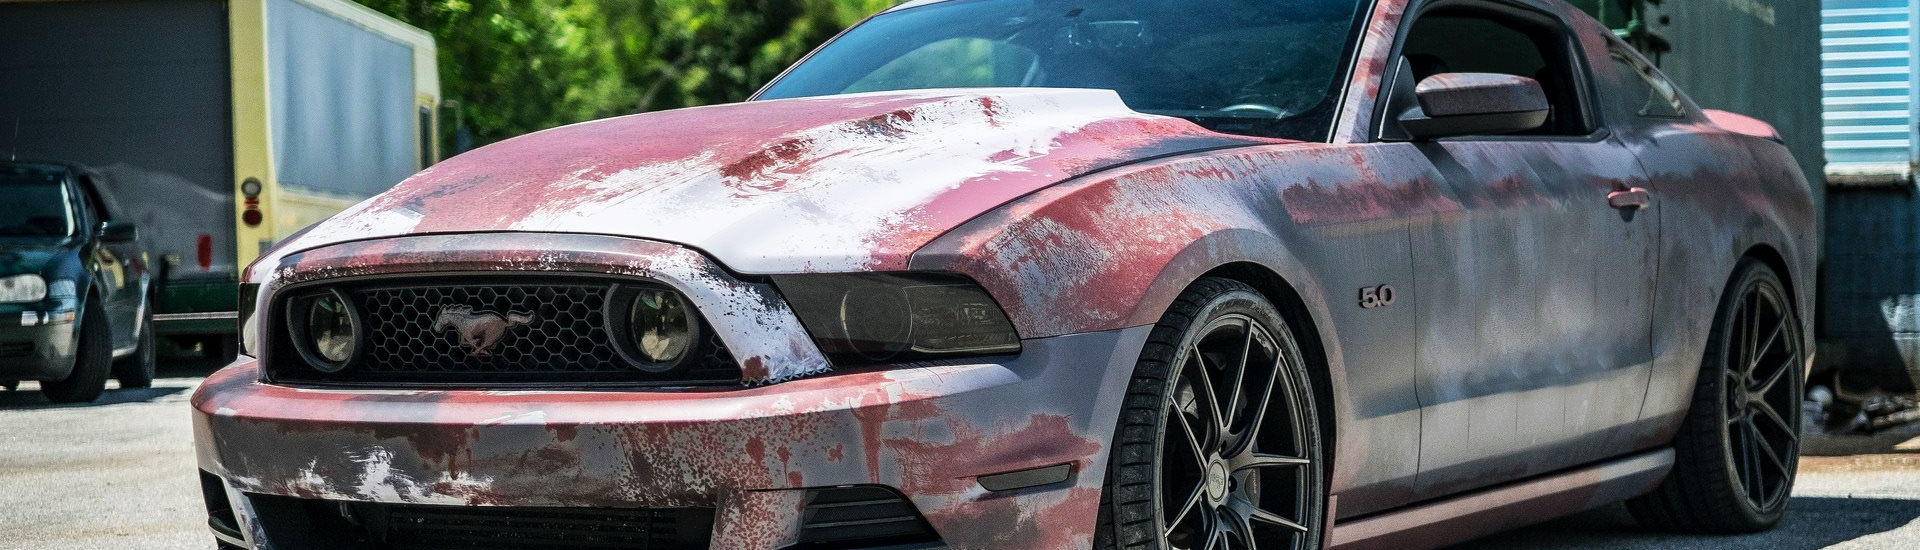 Rust Car Wrap Films